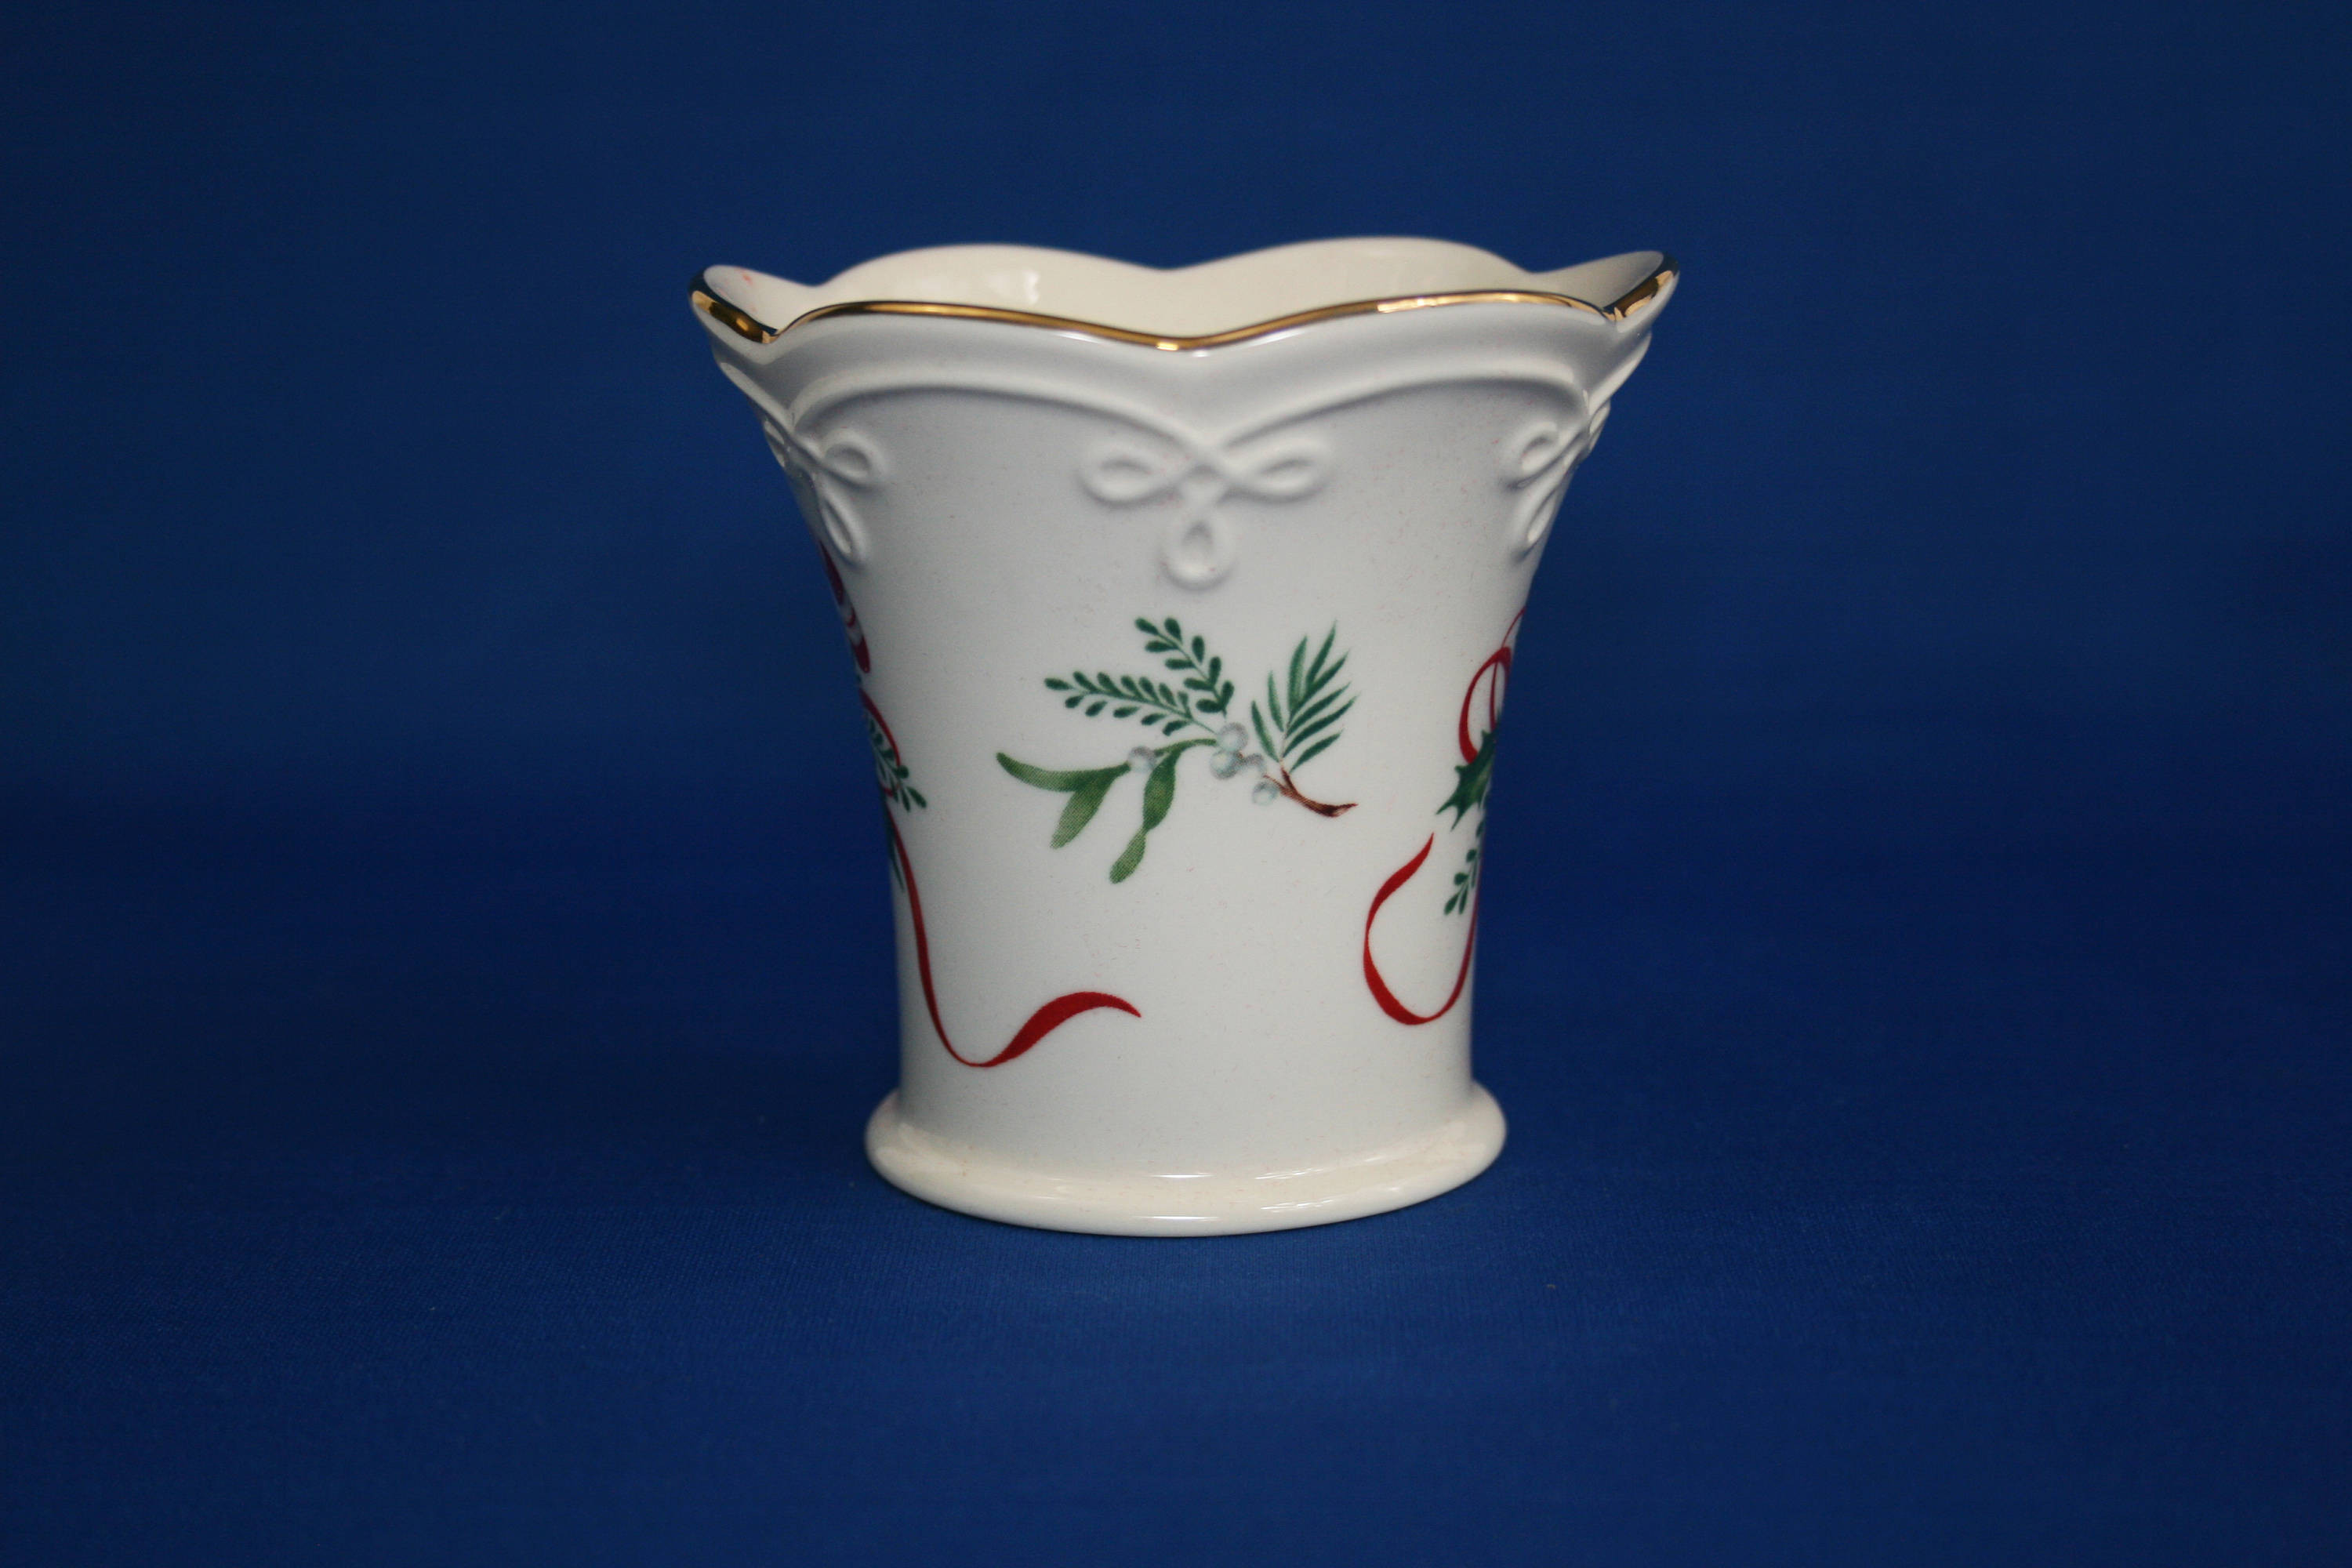 Lenox Elfin Bud Vase Of Vintage Lenox China Candy Cane Tea Light Fluted Cup Candle Etsy Regarding Image 0 Image 1